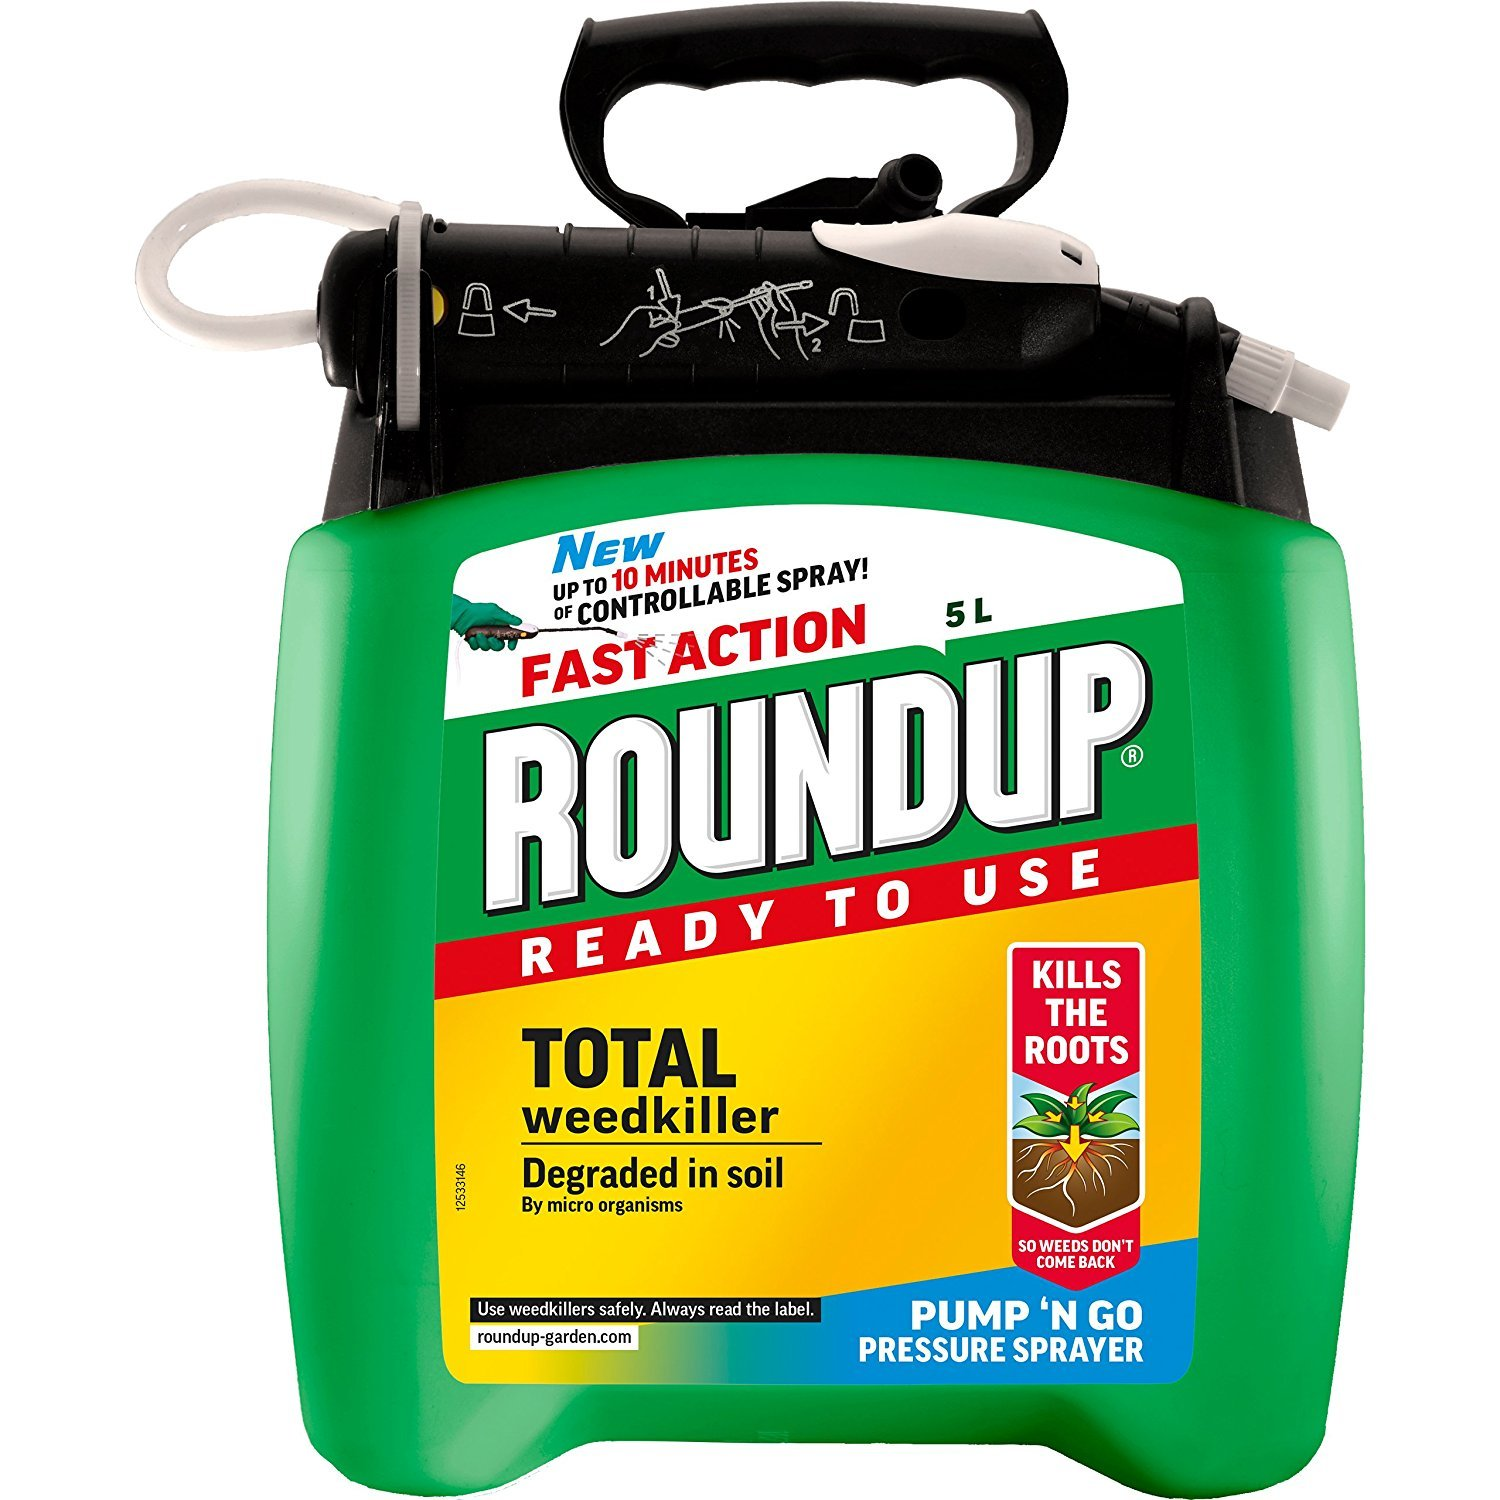 Best weed killer: Get rid of unwanted weeds on your lawn, borders